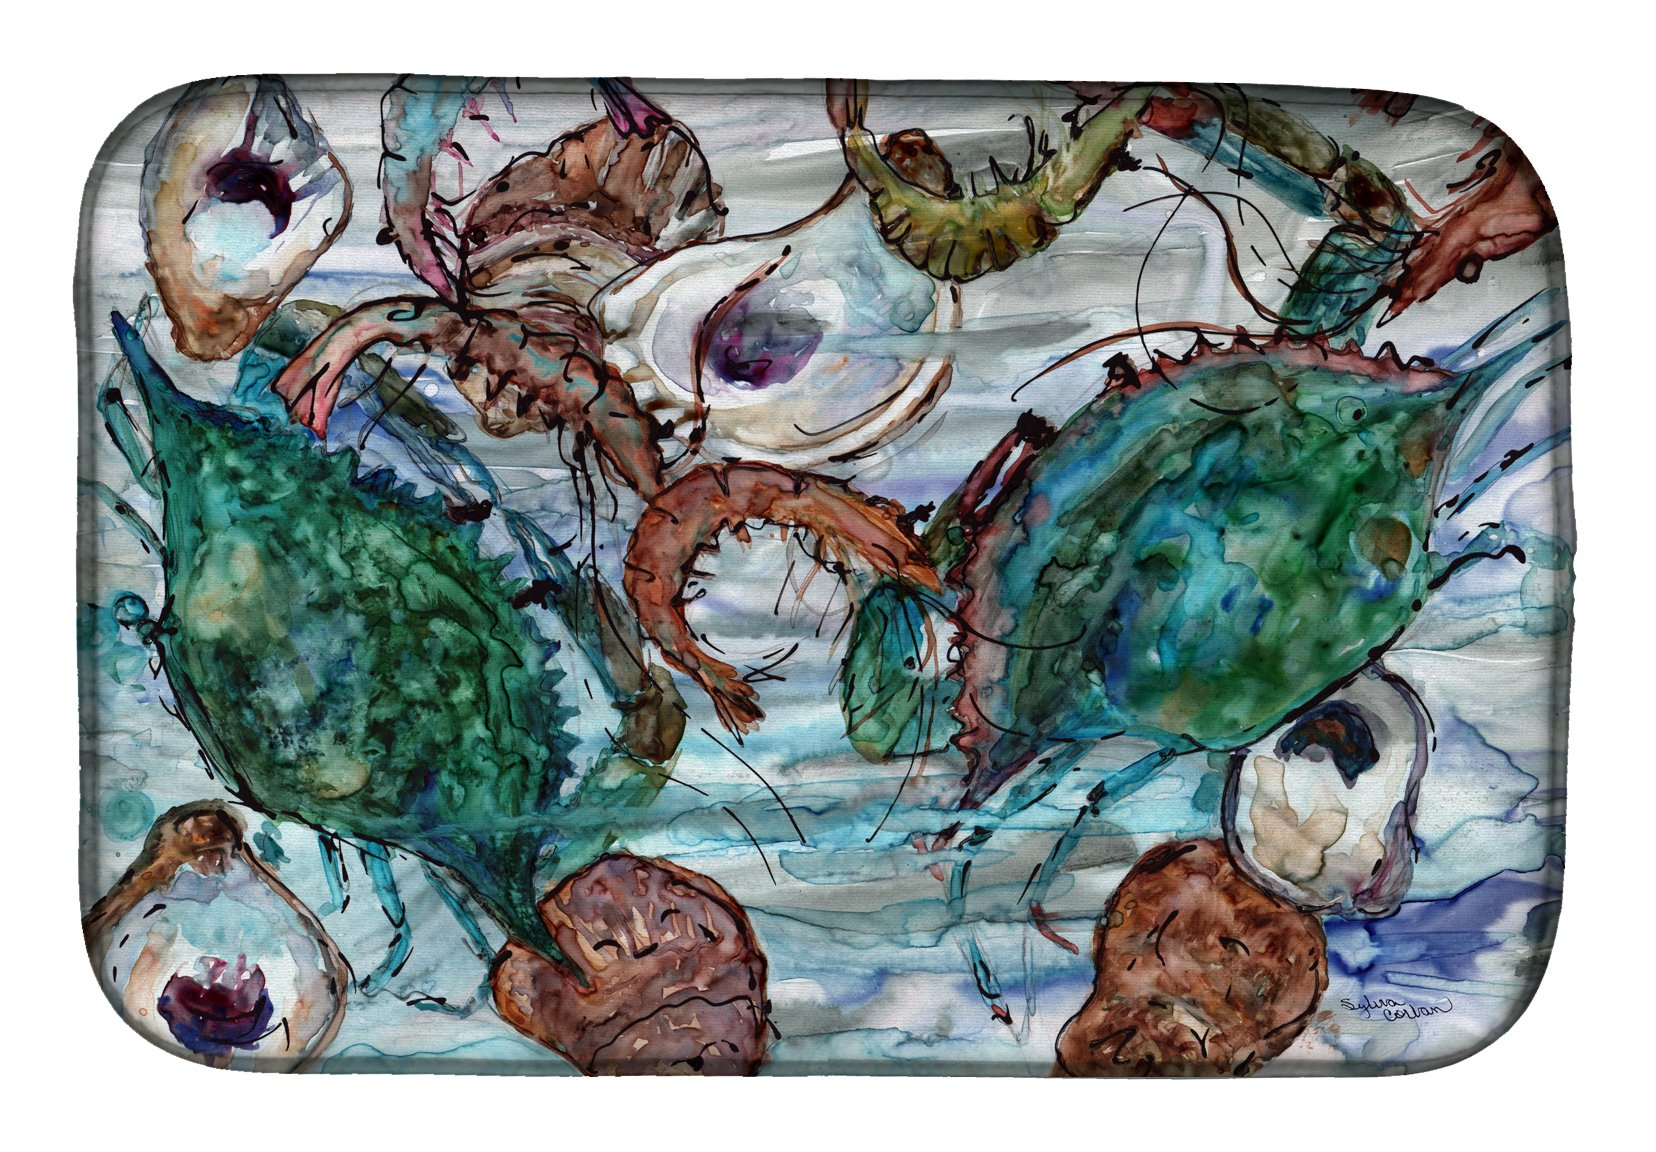 Shrimp, Crabs and Oysters in water Dish Drying Mat 8965DDM by Caroline's Treasures